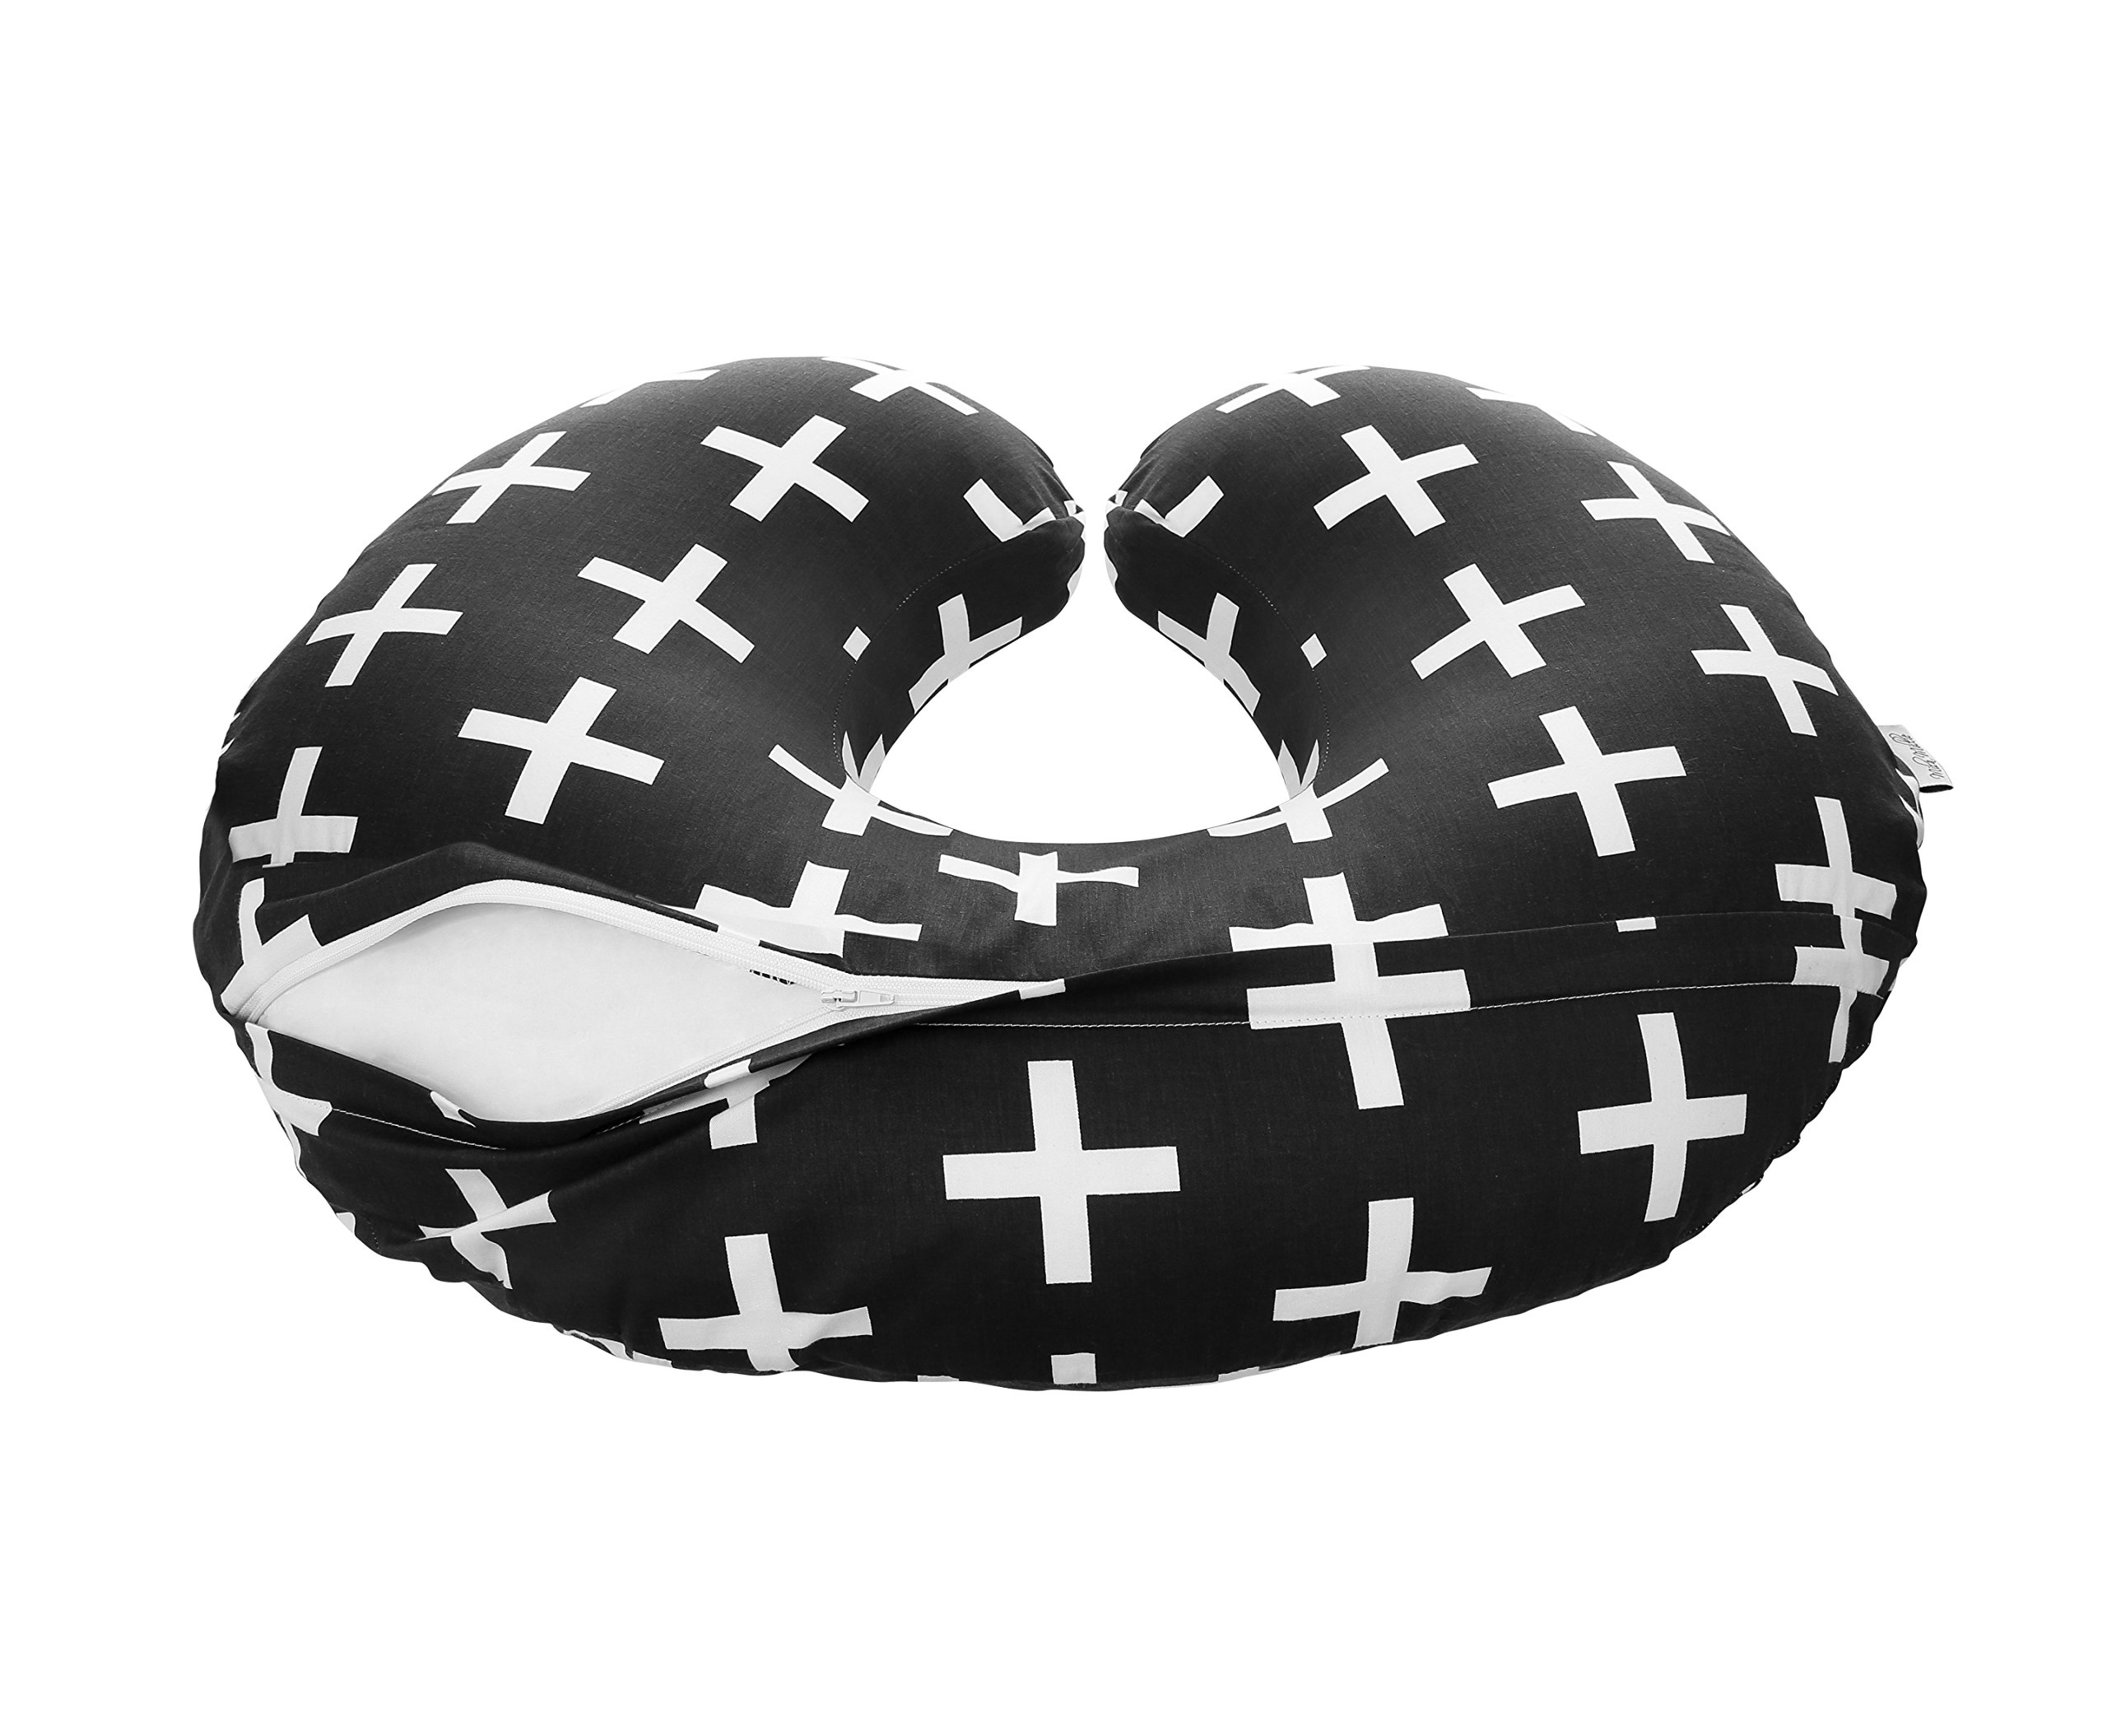 Premium Quality Nursing Pillow Cover by Mila Millie - Nordic Swiss White Cross Unisex Design Slipcover - 100% Cotton Hypoallergenic - Perfect for Breastfeeding Mothers - Baby Shower Gift by Mila Millie (Image #3)